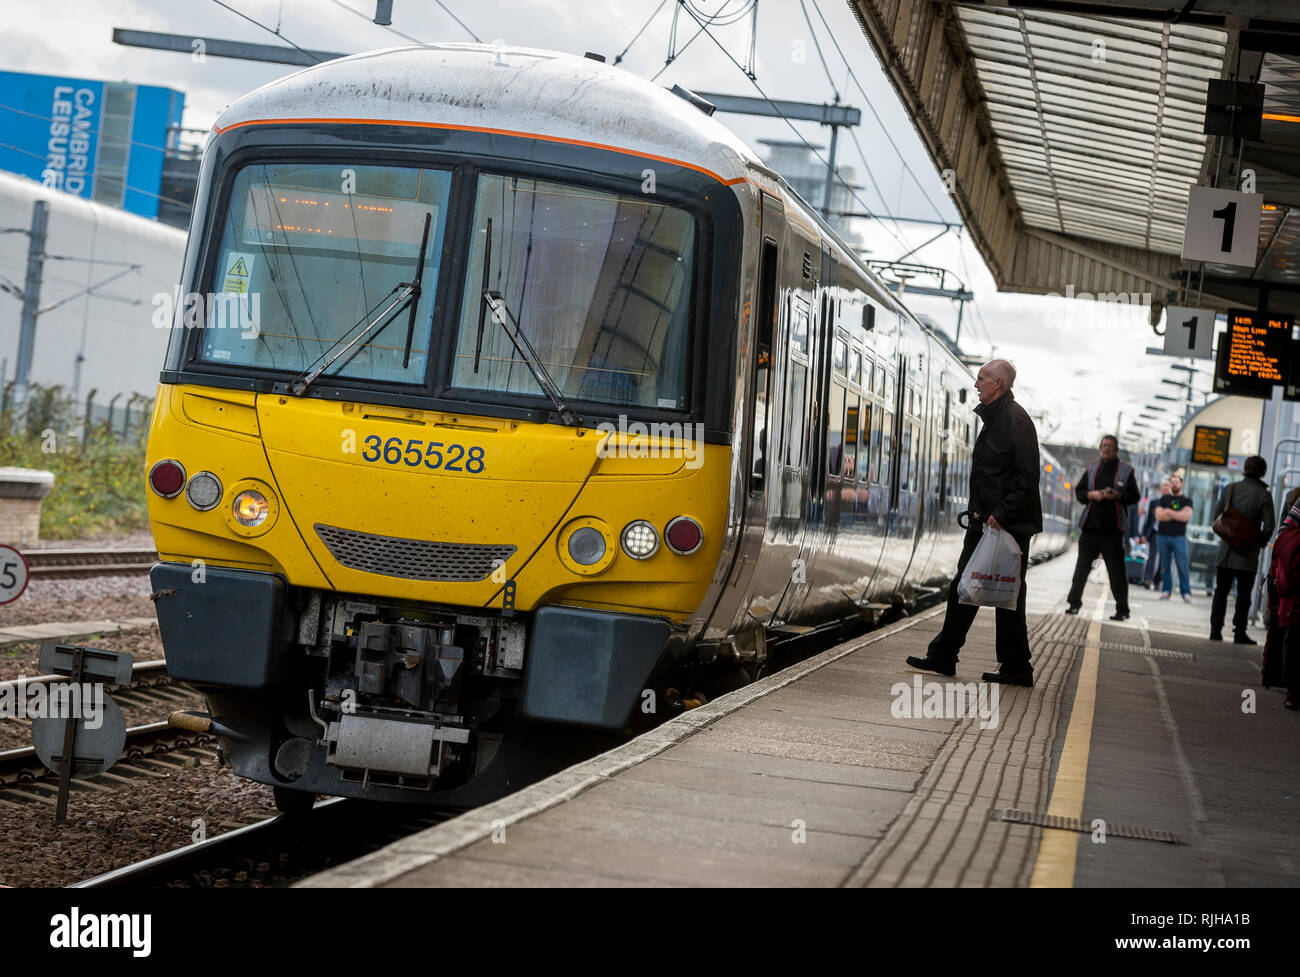 Class 365 Networker Express dual voltage electric multiple unit train in Great Northern livery waiting at a station in the UK. - Stock Image